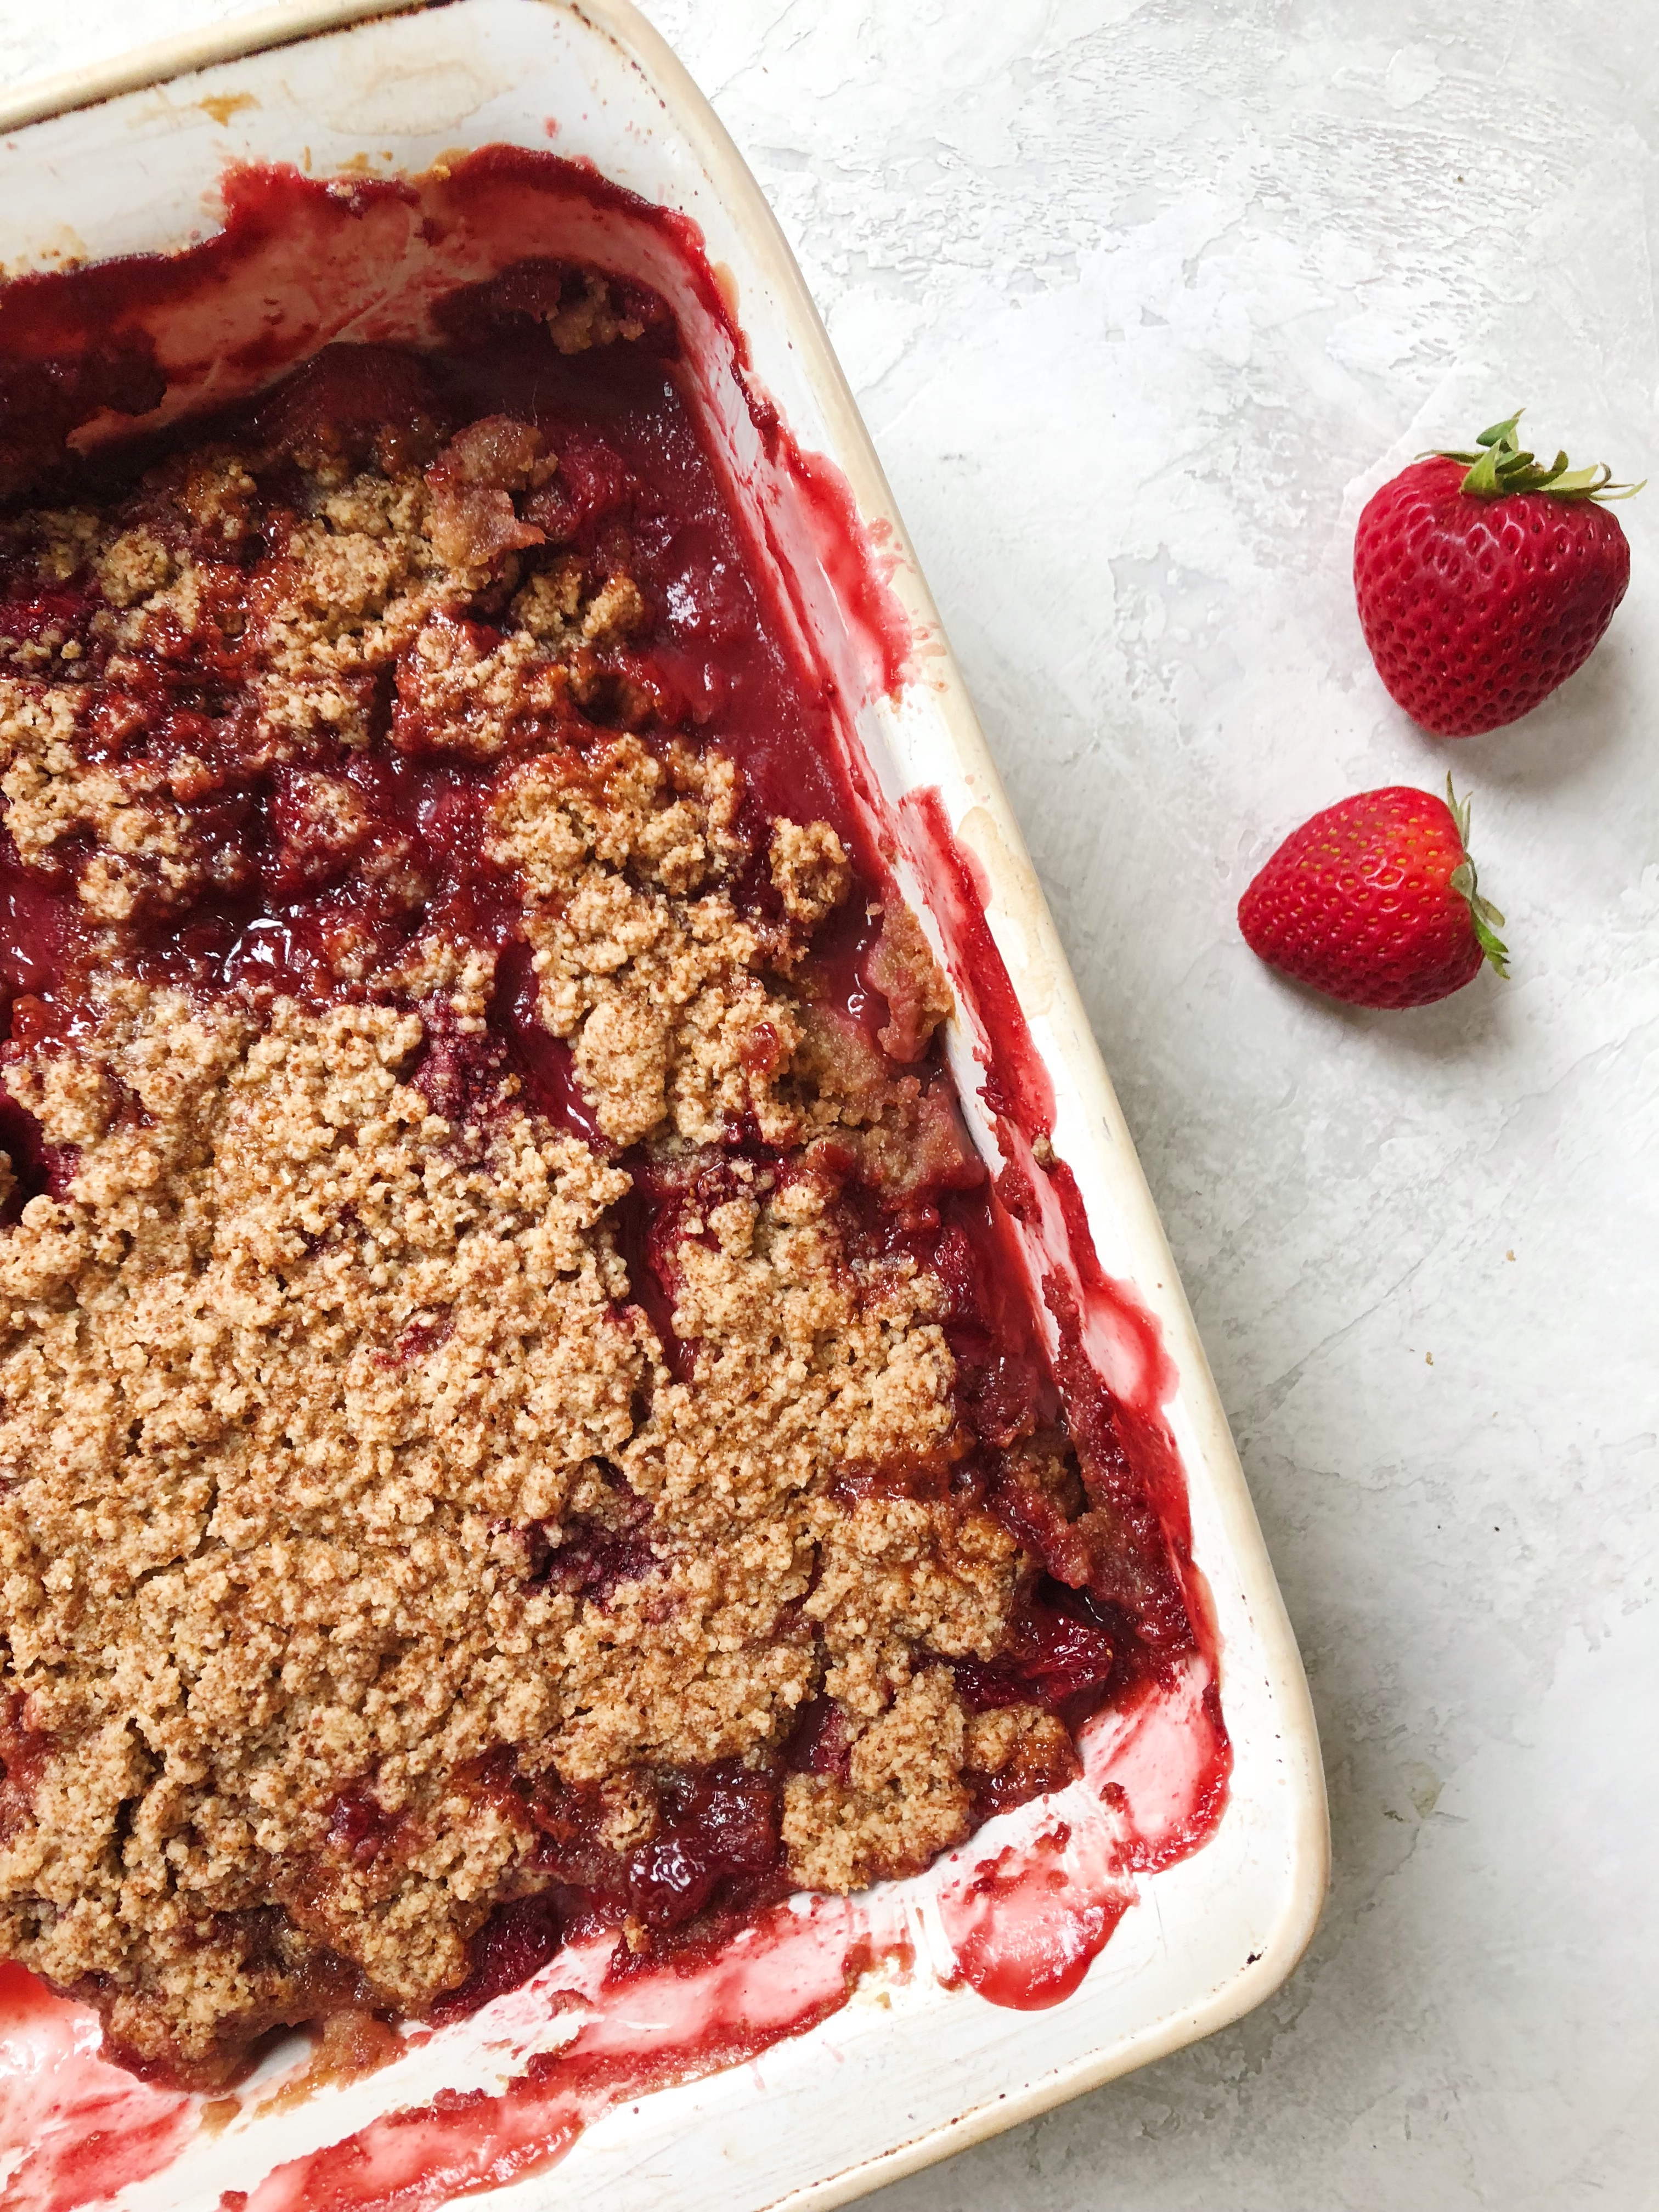 Rhubarb and Red Berry Crisp